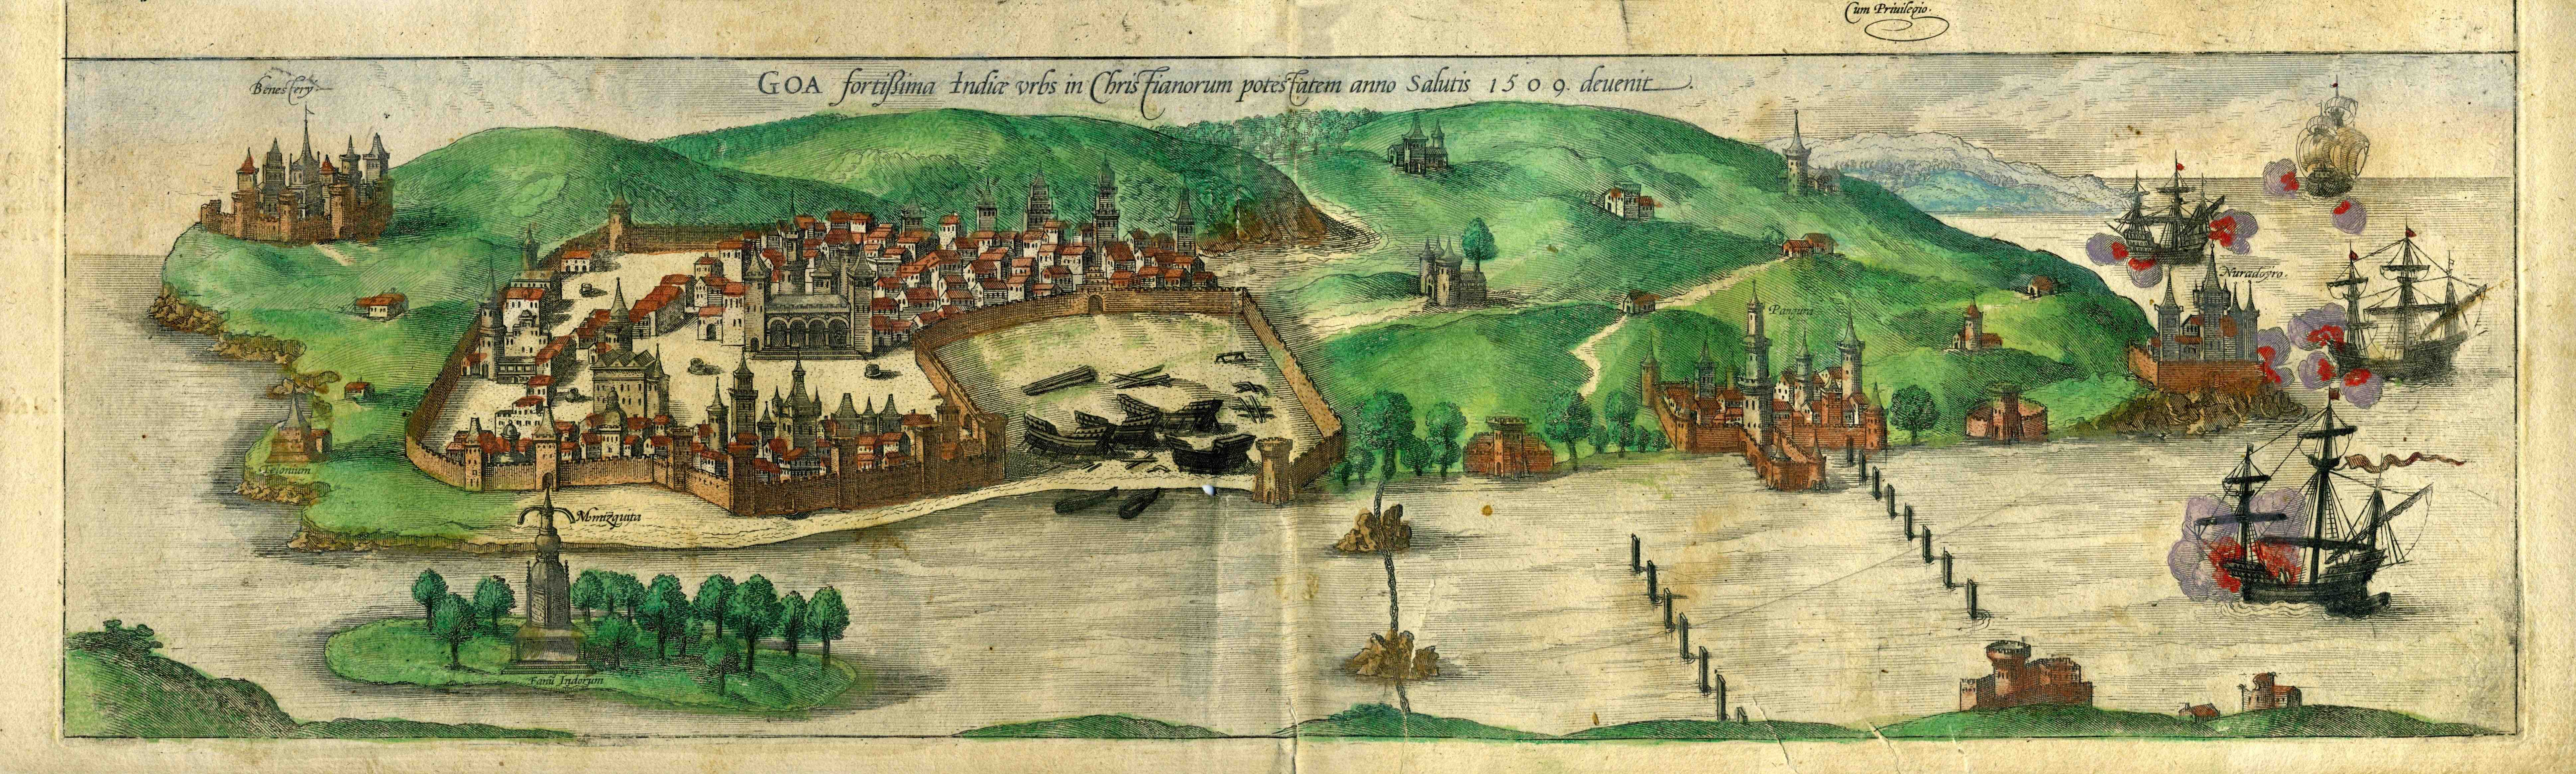 The City of Goa in 1572.